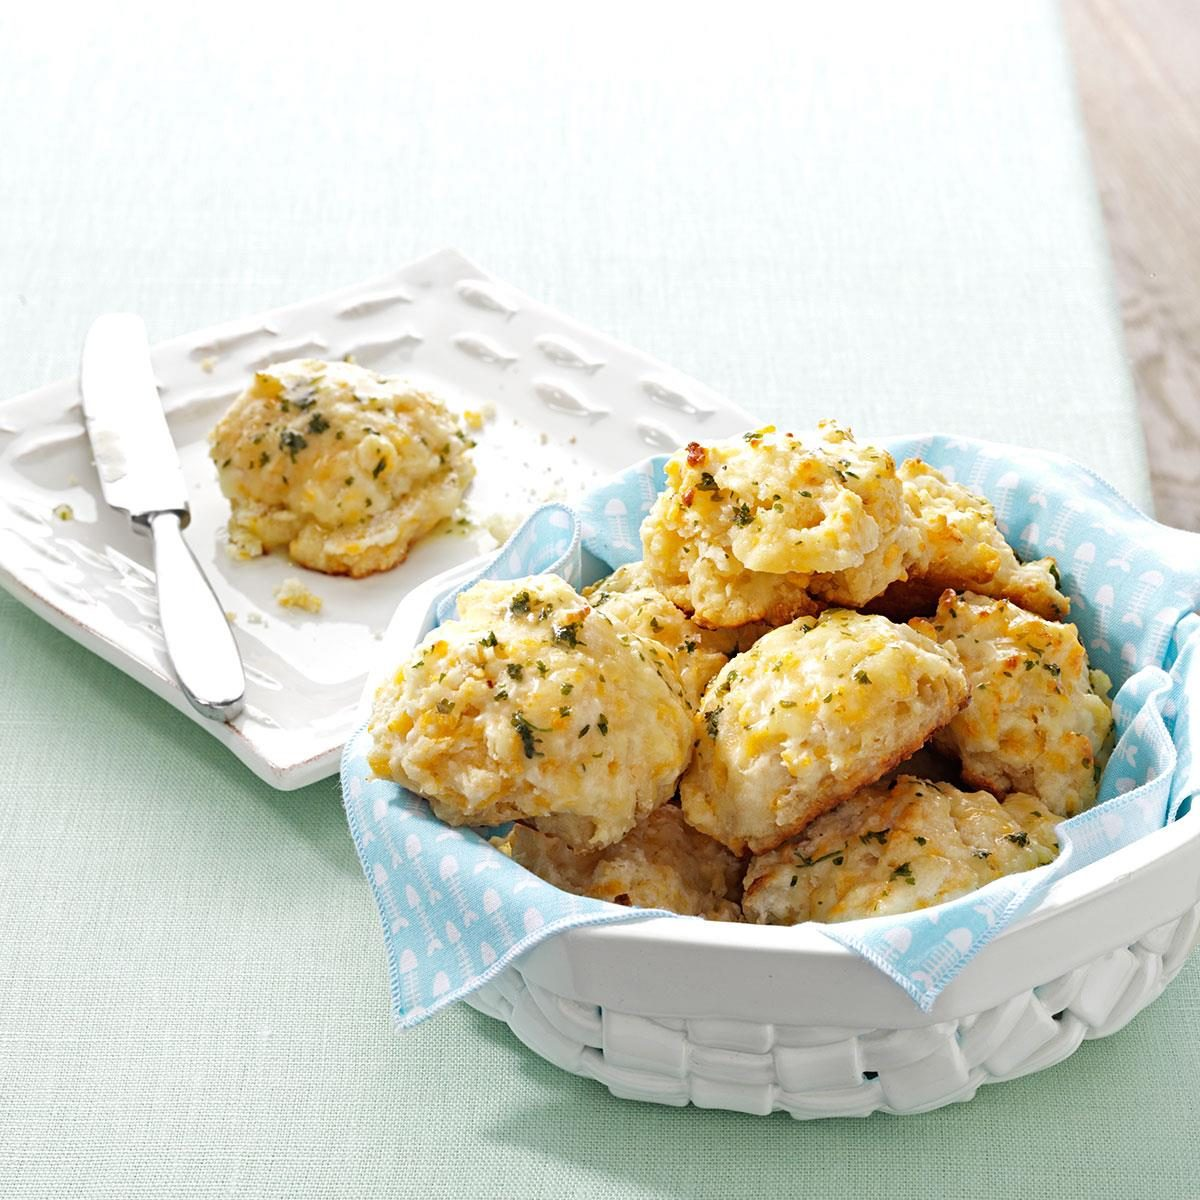 Pretentious Makeover Cheddar Biscuits Exps159552 Thhc2377563b05 09 1b Rms 1 Cheddar Bay Biscuit Waffles Recipe Cheddar Bay Biscuit Mix Recipes nice food Cheddar Bay Biscuit Recipe